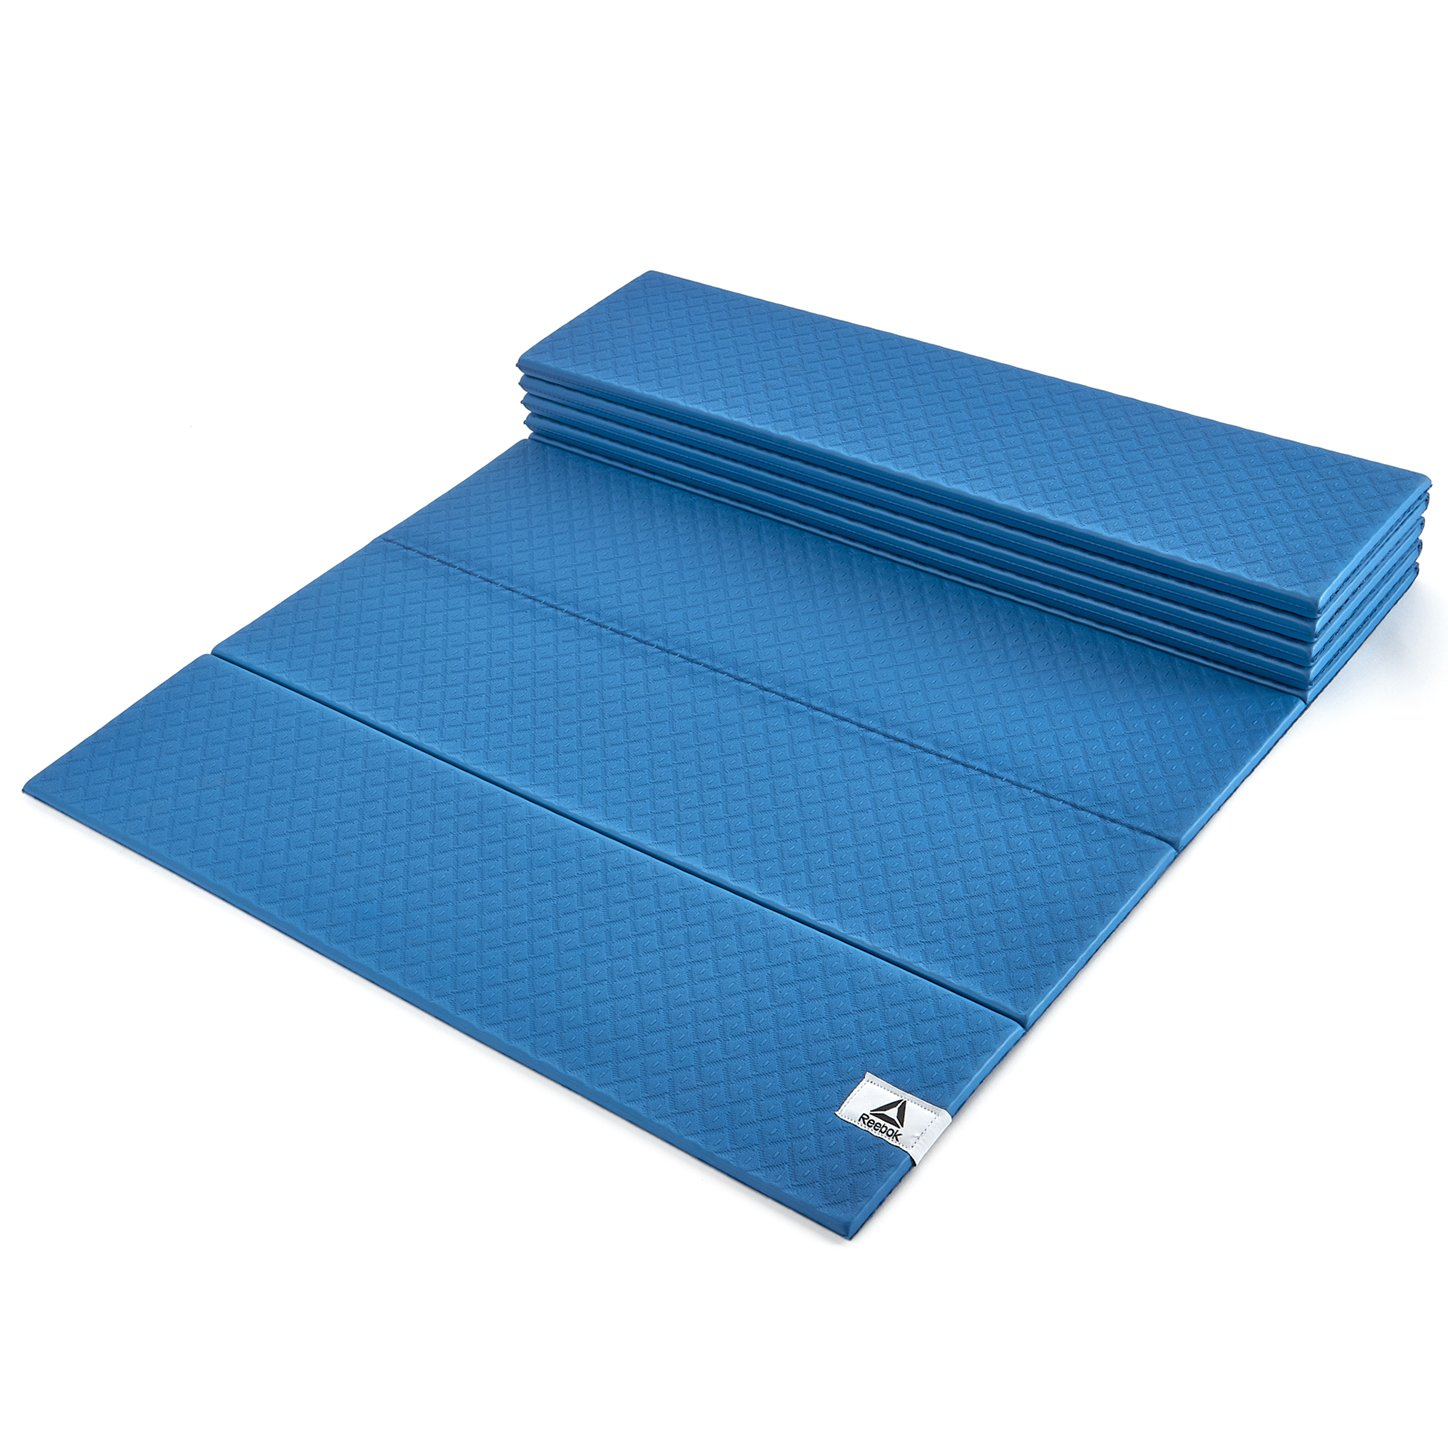 Amazon.com : Reebok Folded Yoga Mat, Blue/Black, 6mm ...